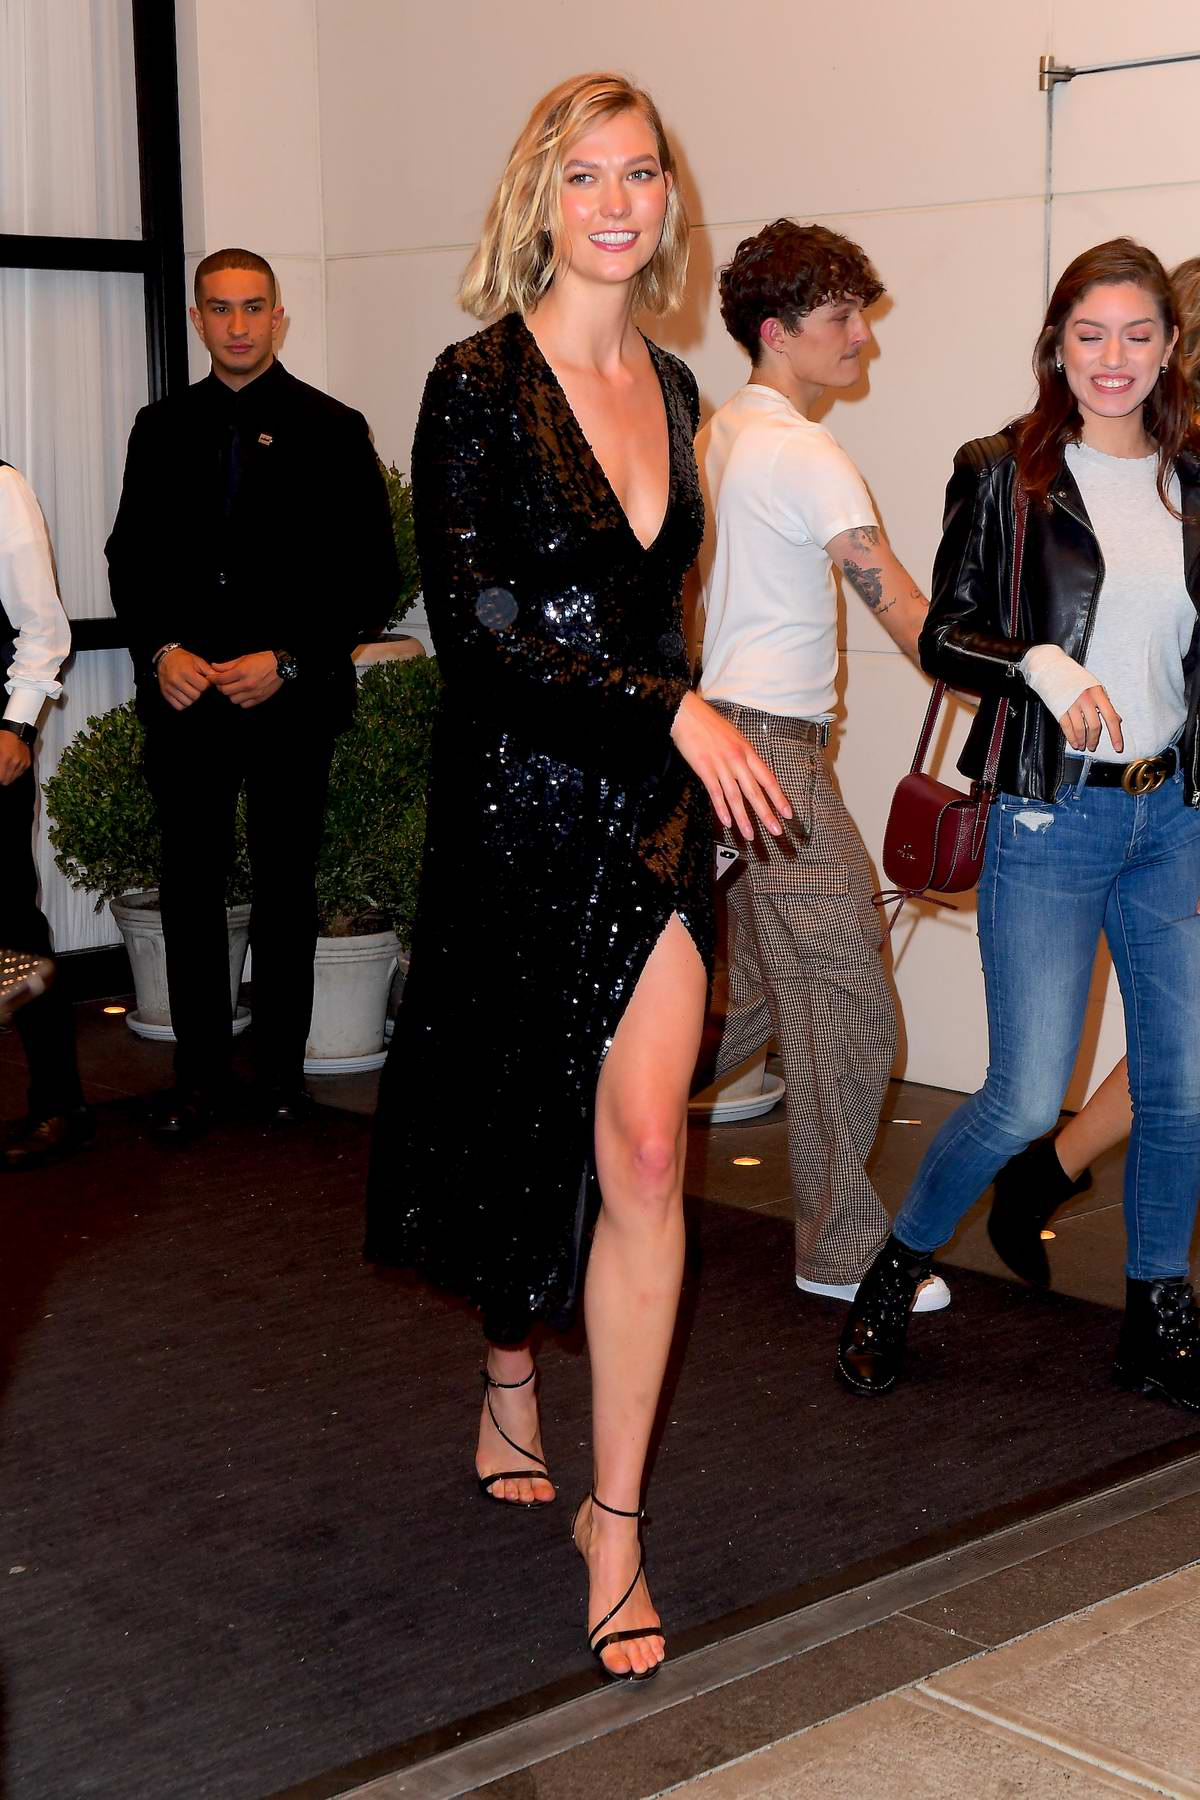 Karlie Kloss shimmers in a sequined black dress as she attends a Pre Met Gala Party at the Edition Hotel in Times Square, New York City